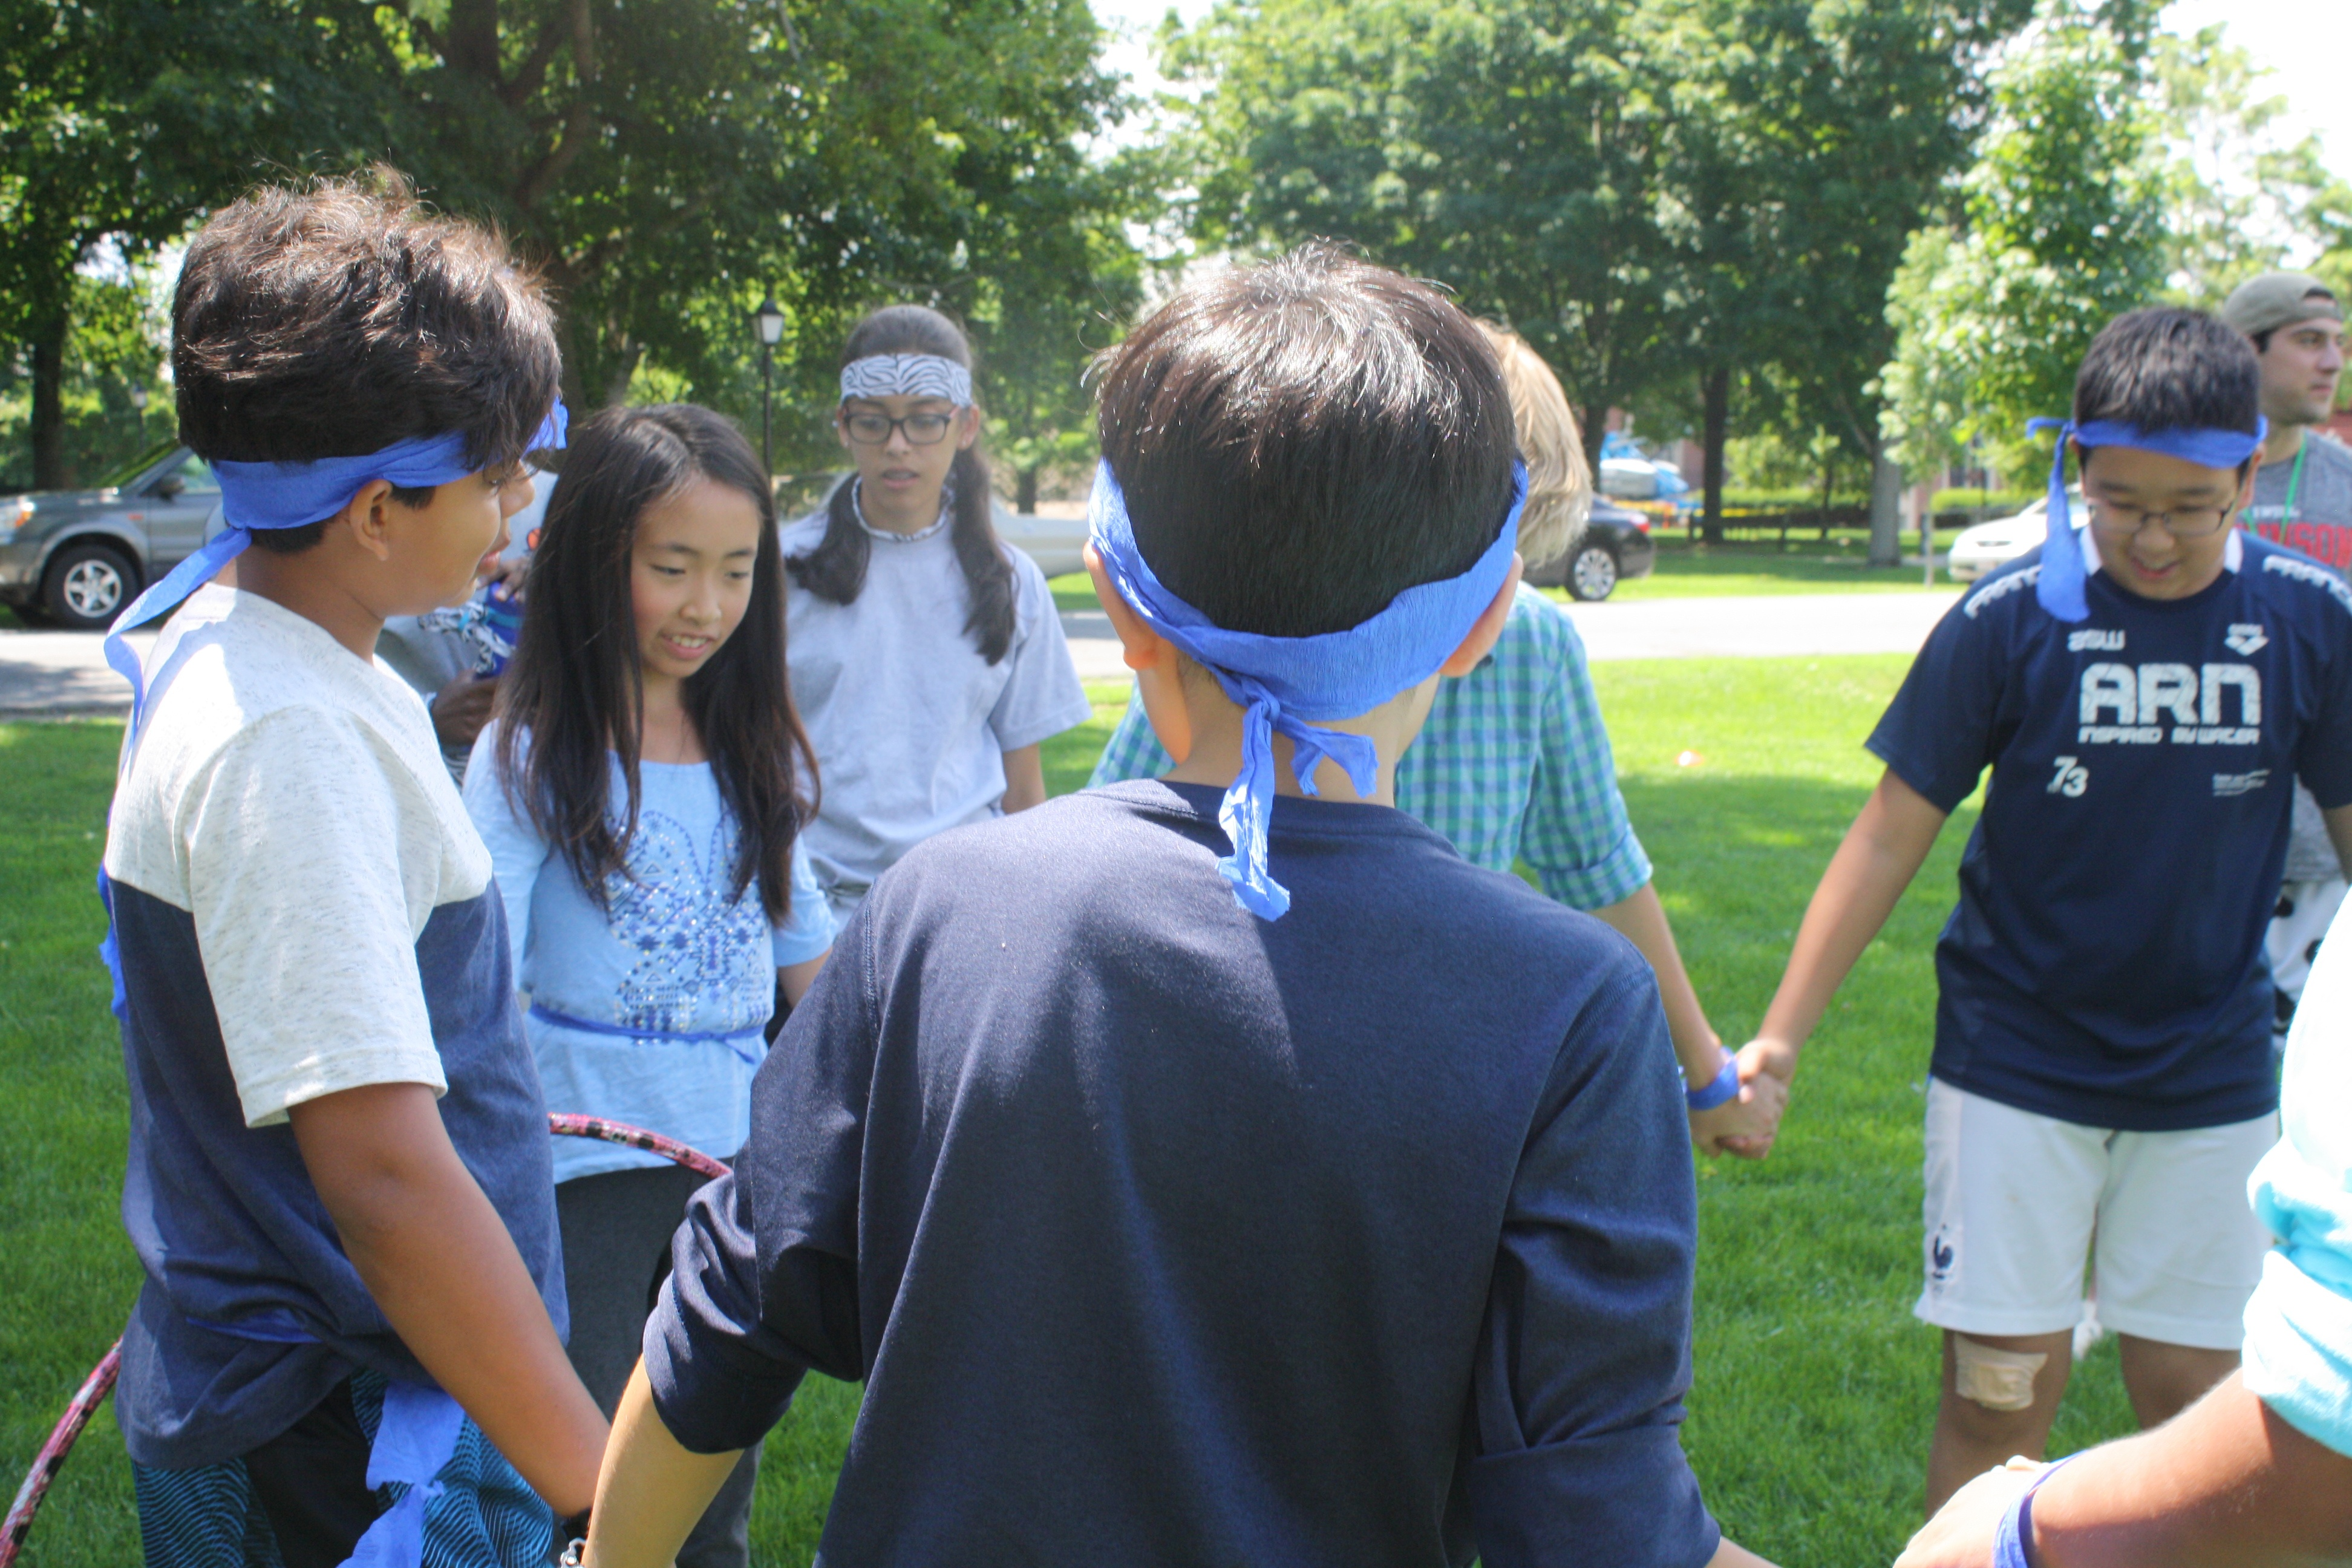 Midde school students from two summer programs play a hula hoop challenge